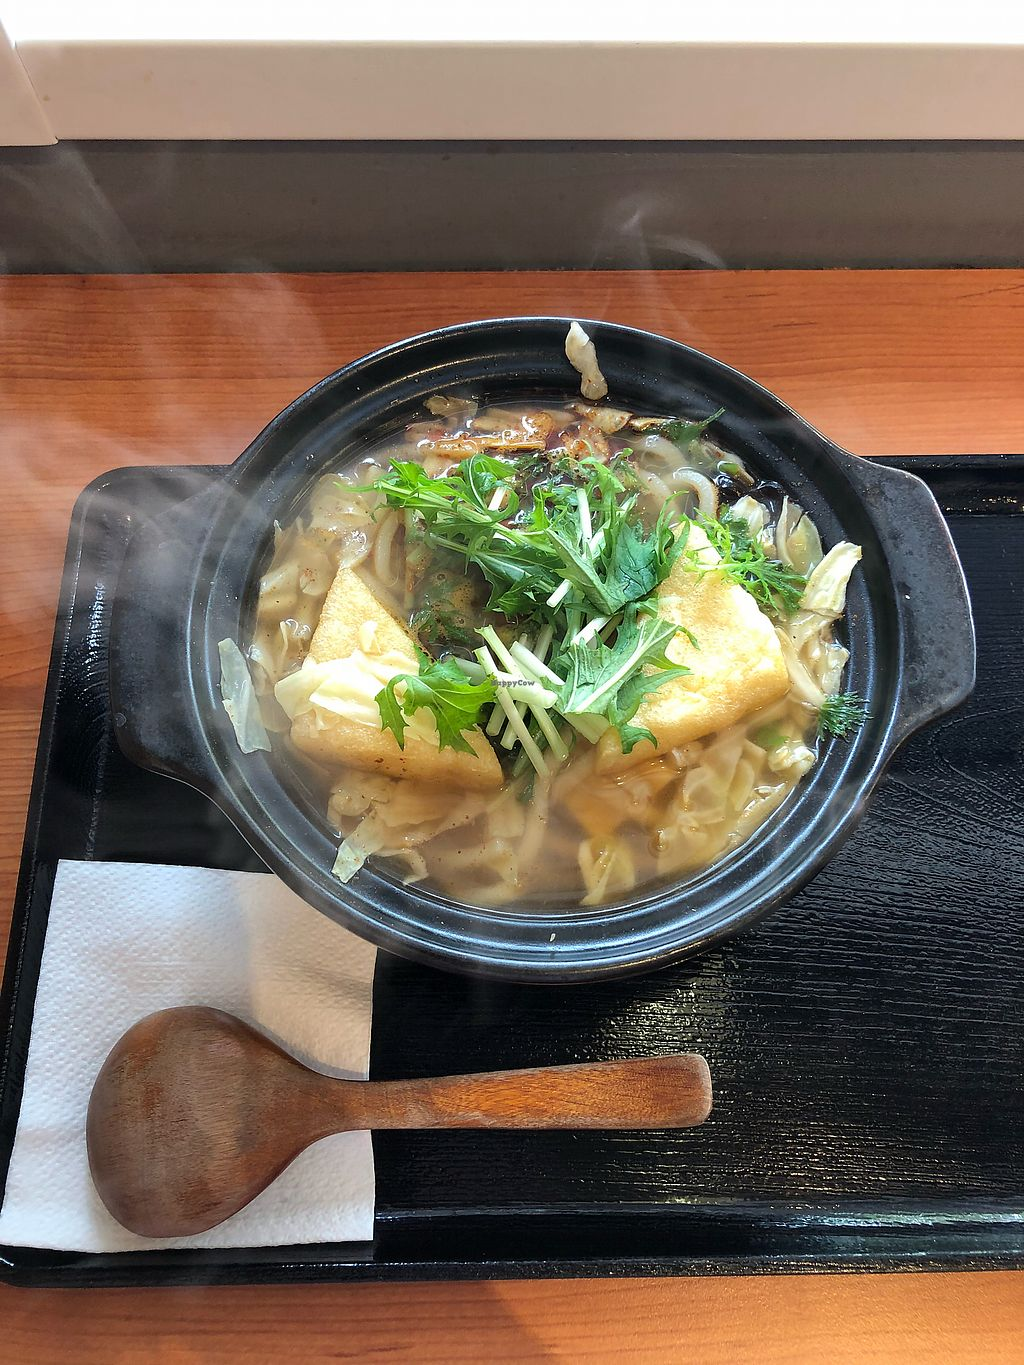 """Photo of Macrobiotics  by <a href=""""/members/profile/Dai"""">Dai</a> <br/>Chef special spicy with Udon noodles <br/> March 19, 2018  - <a href='/contact/abuse/image/100660/372788'>Report</a>"""